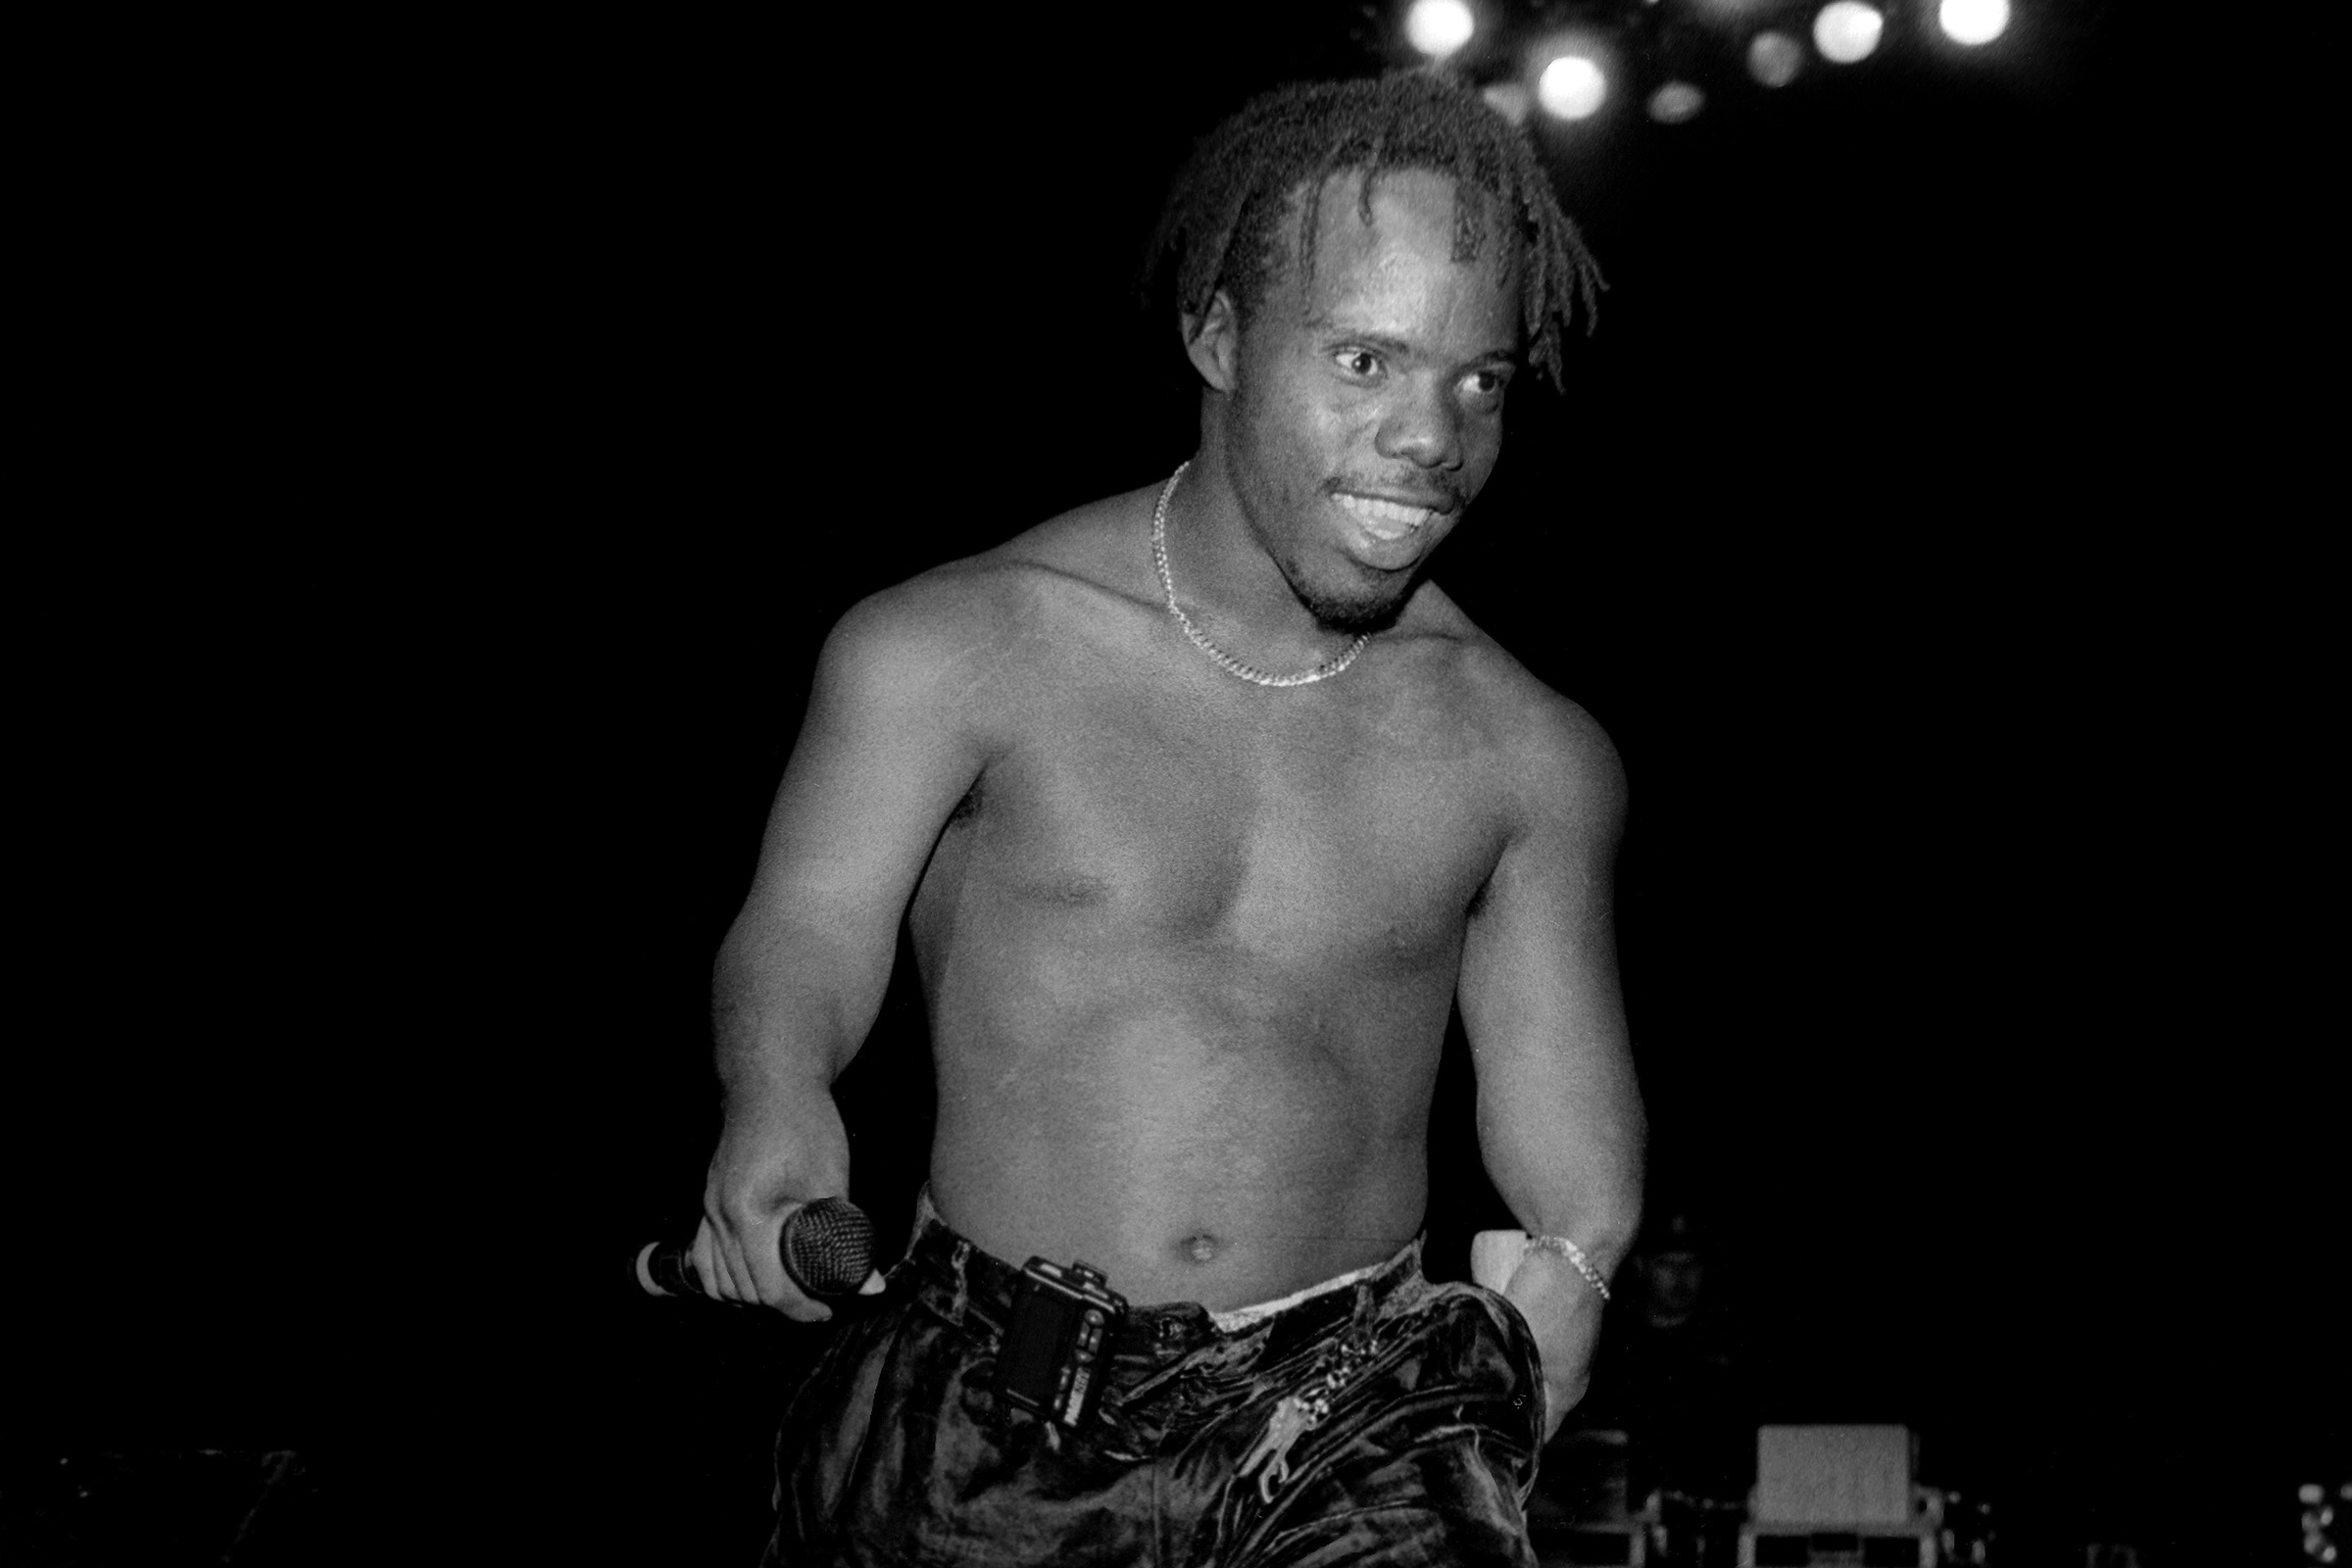 Bushwick Bill's Impossible-to-Forget Legacy - Rolling Stone